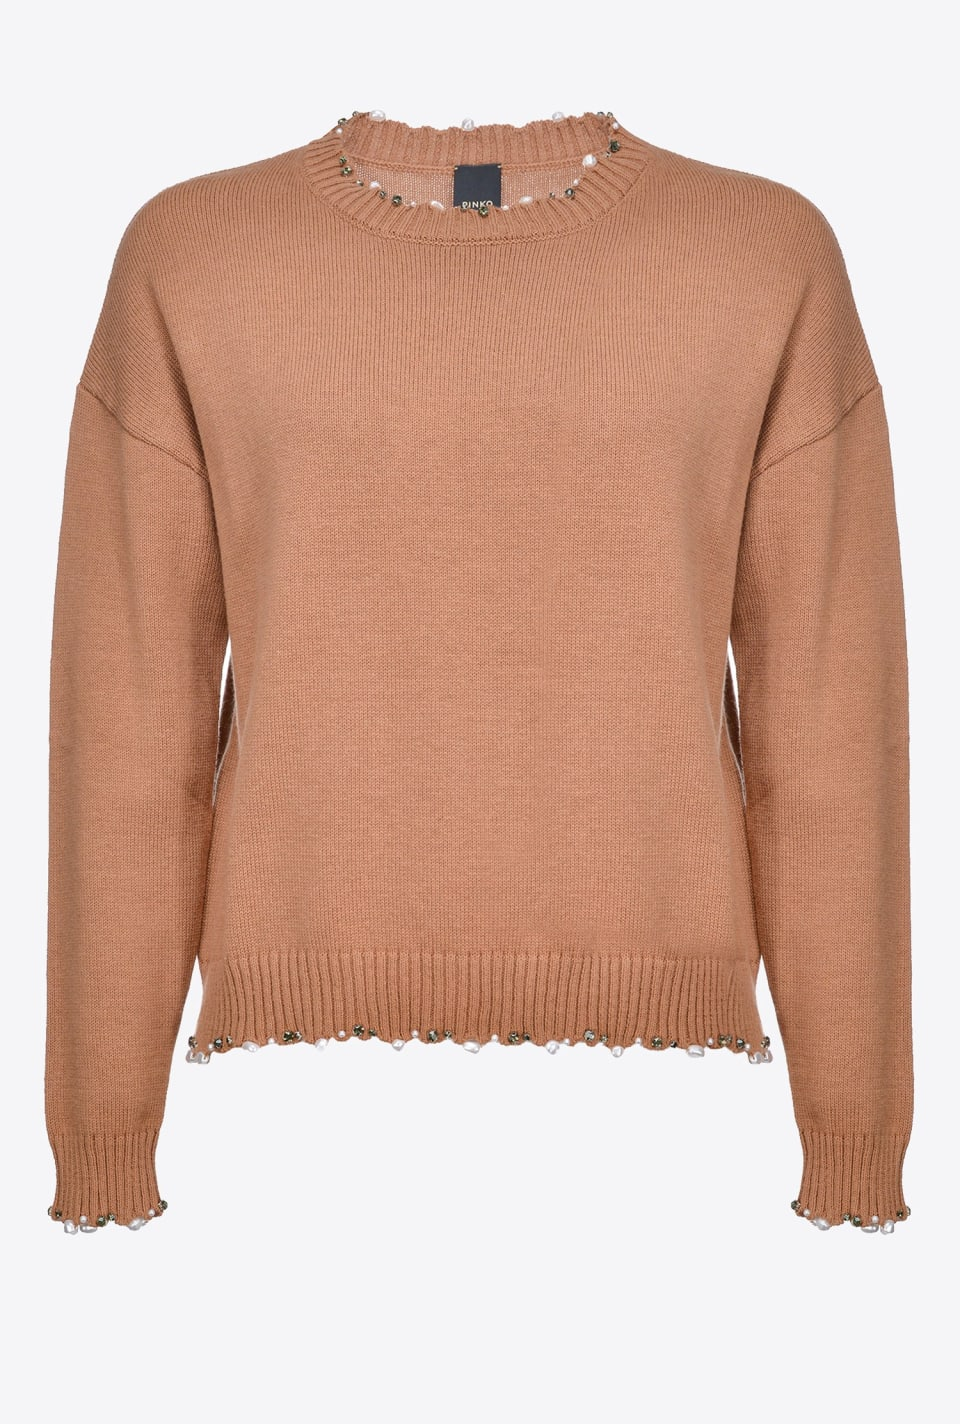 Sweater with pearls - Pinko